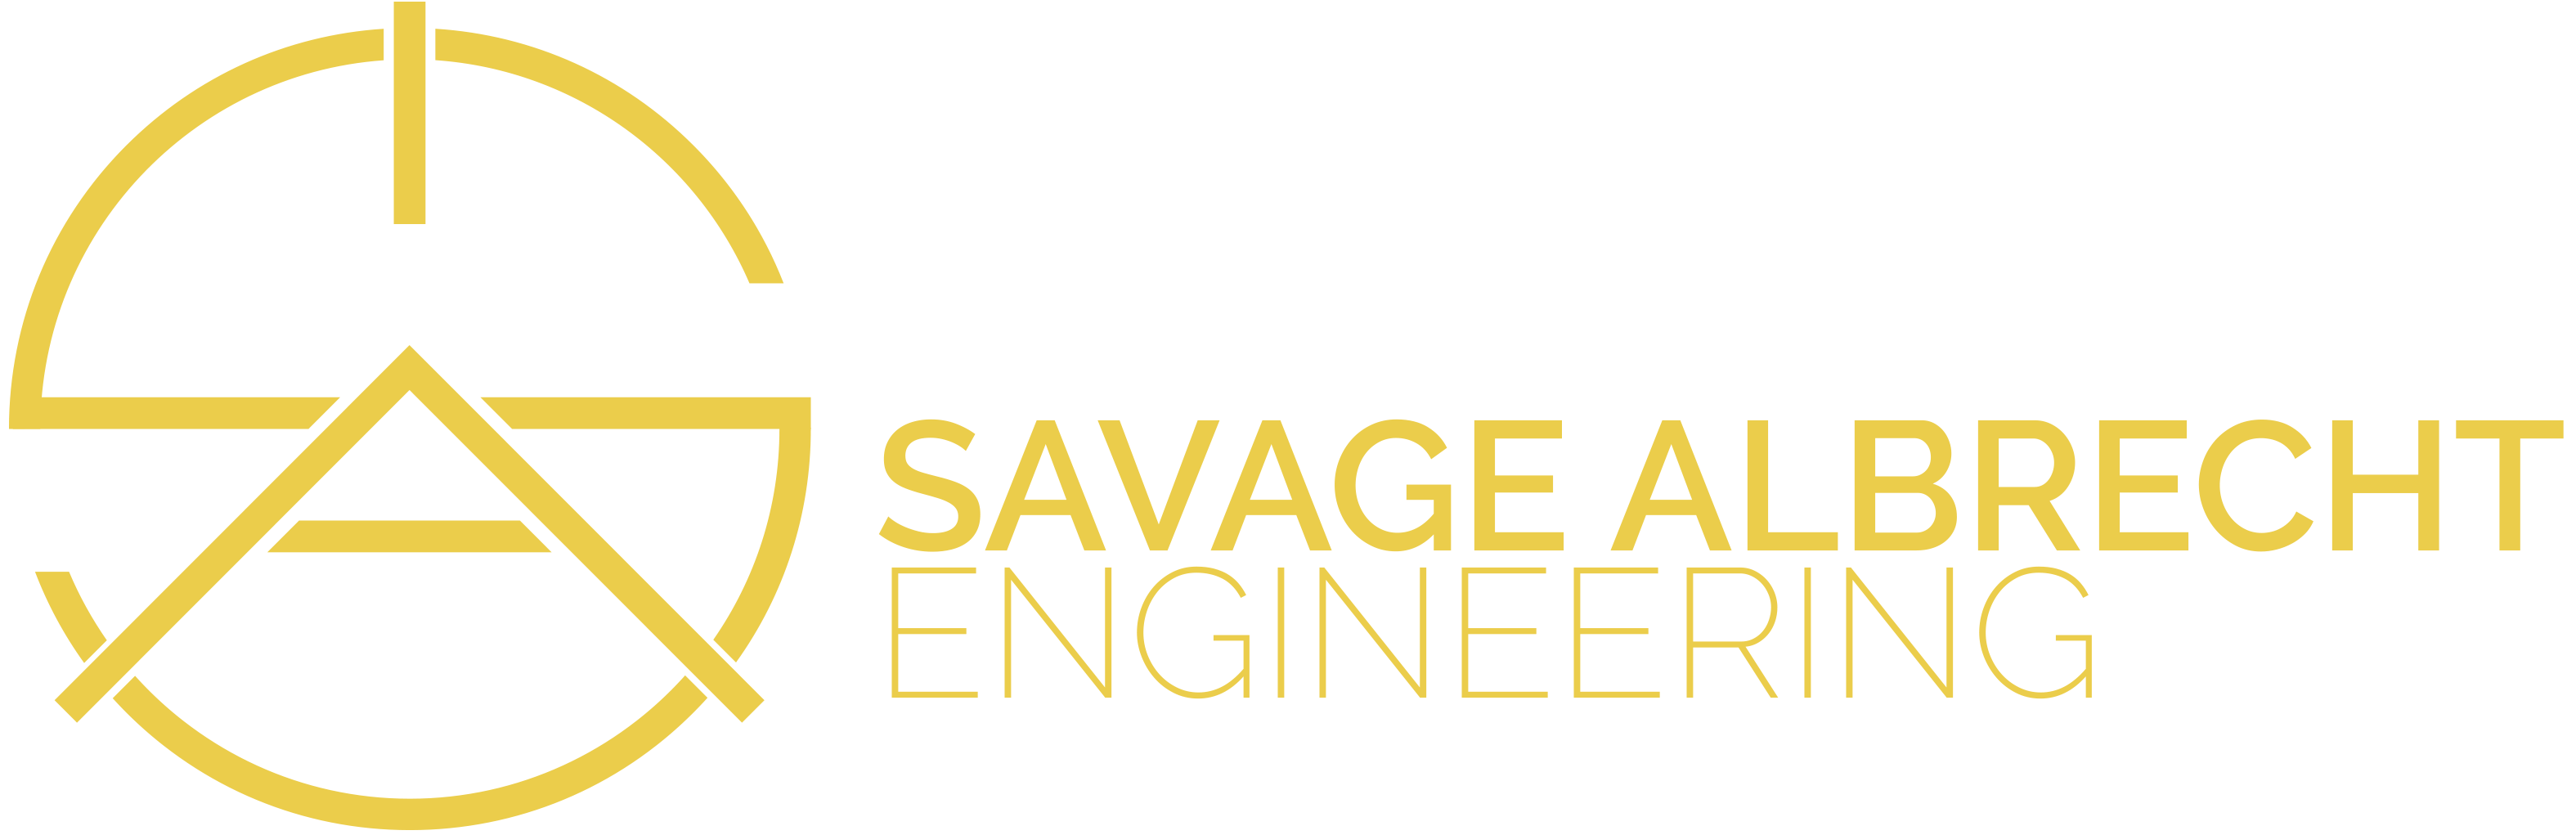 Savage Albrecht Engineering